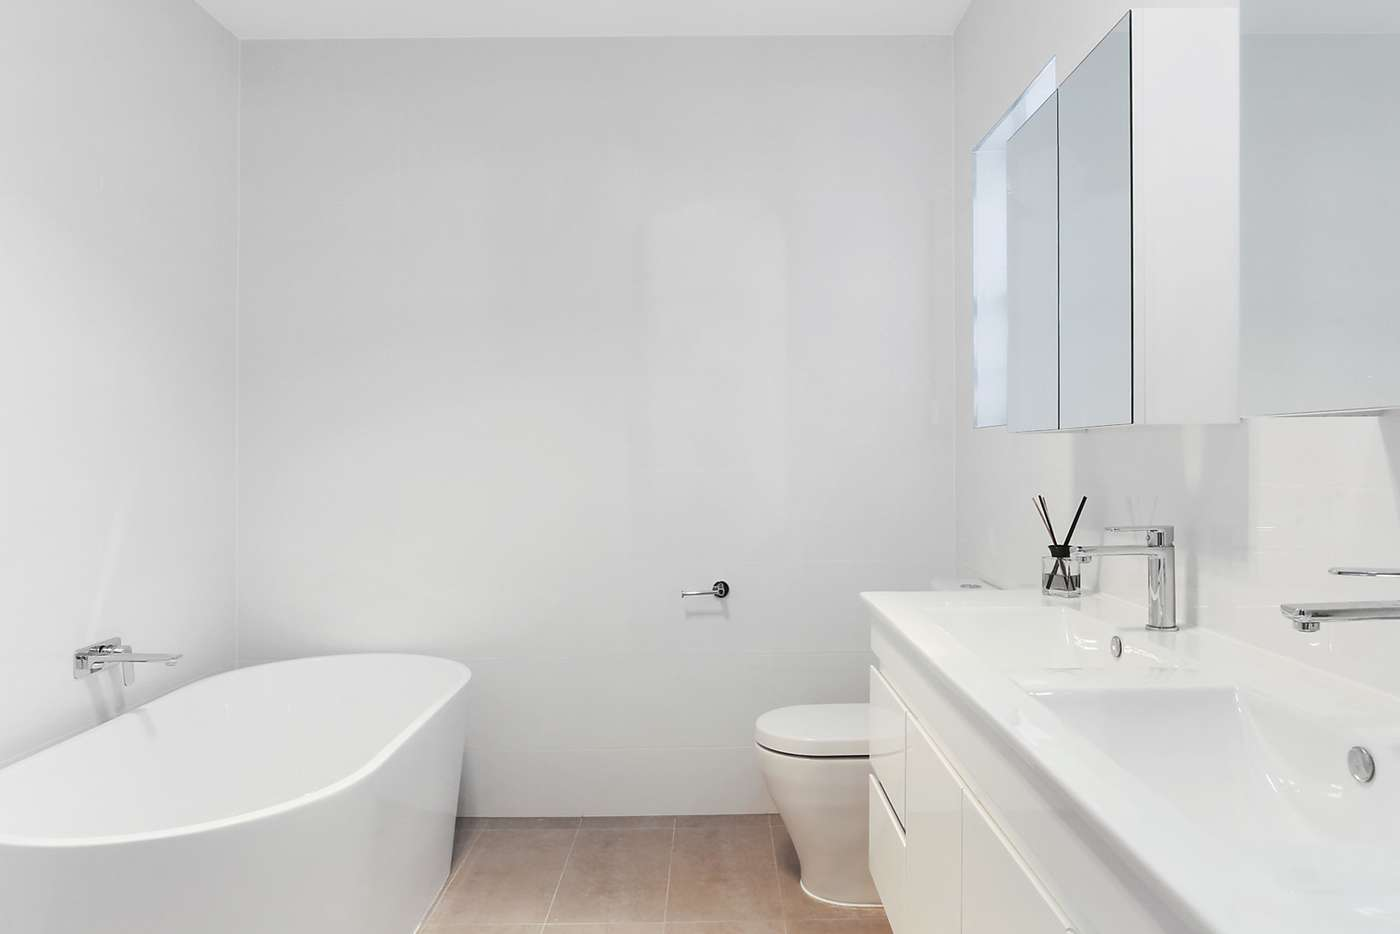 Sixth view of Homely house listing, 59a Jersey Avenue, Mortdale NSW 2223